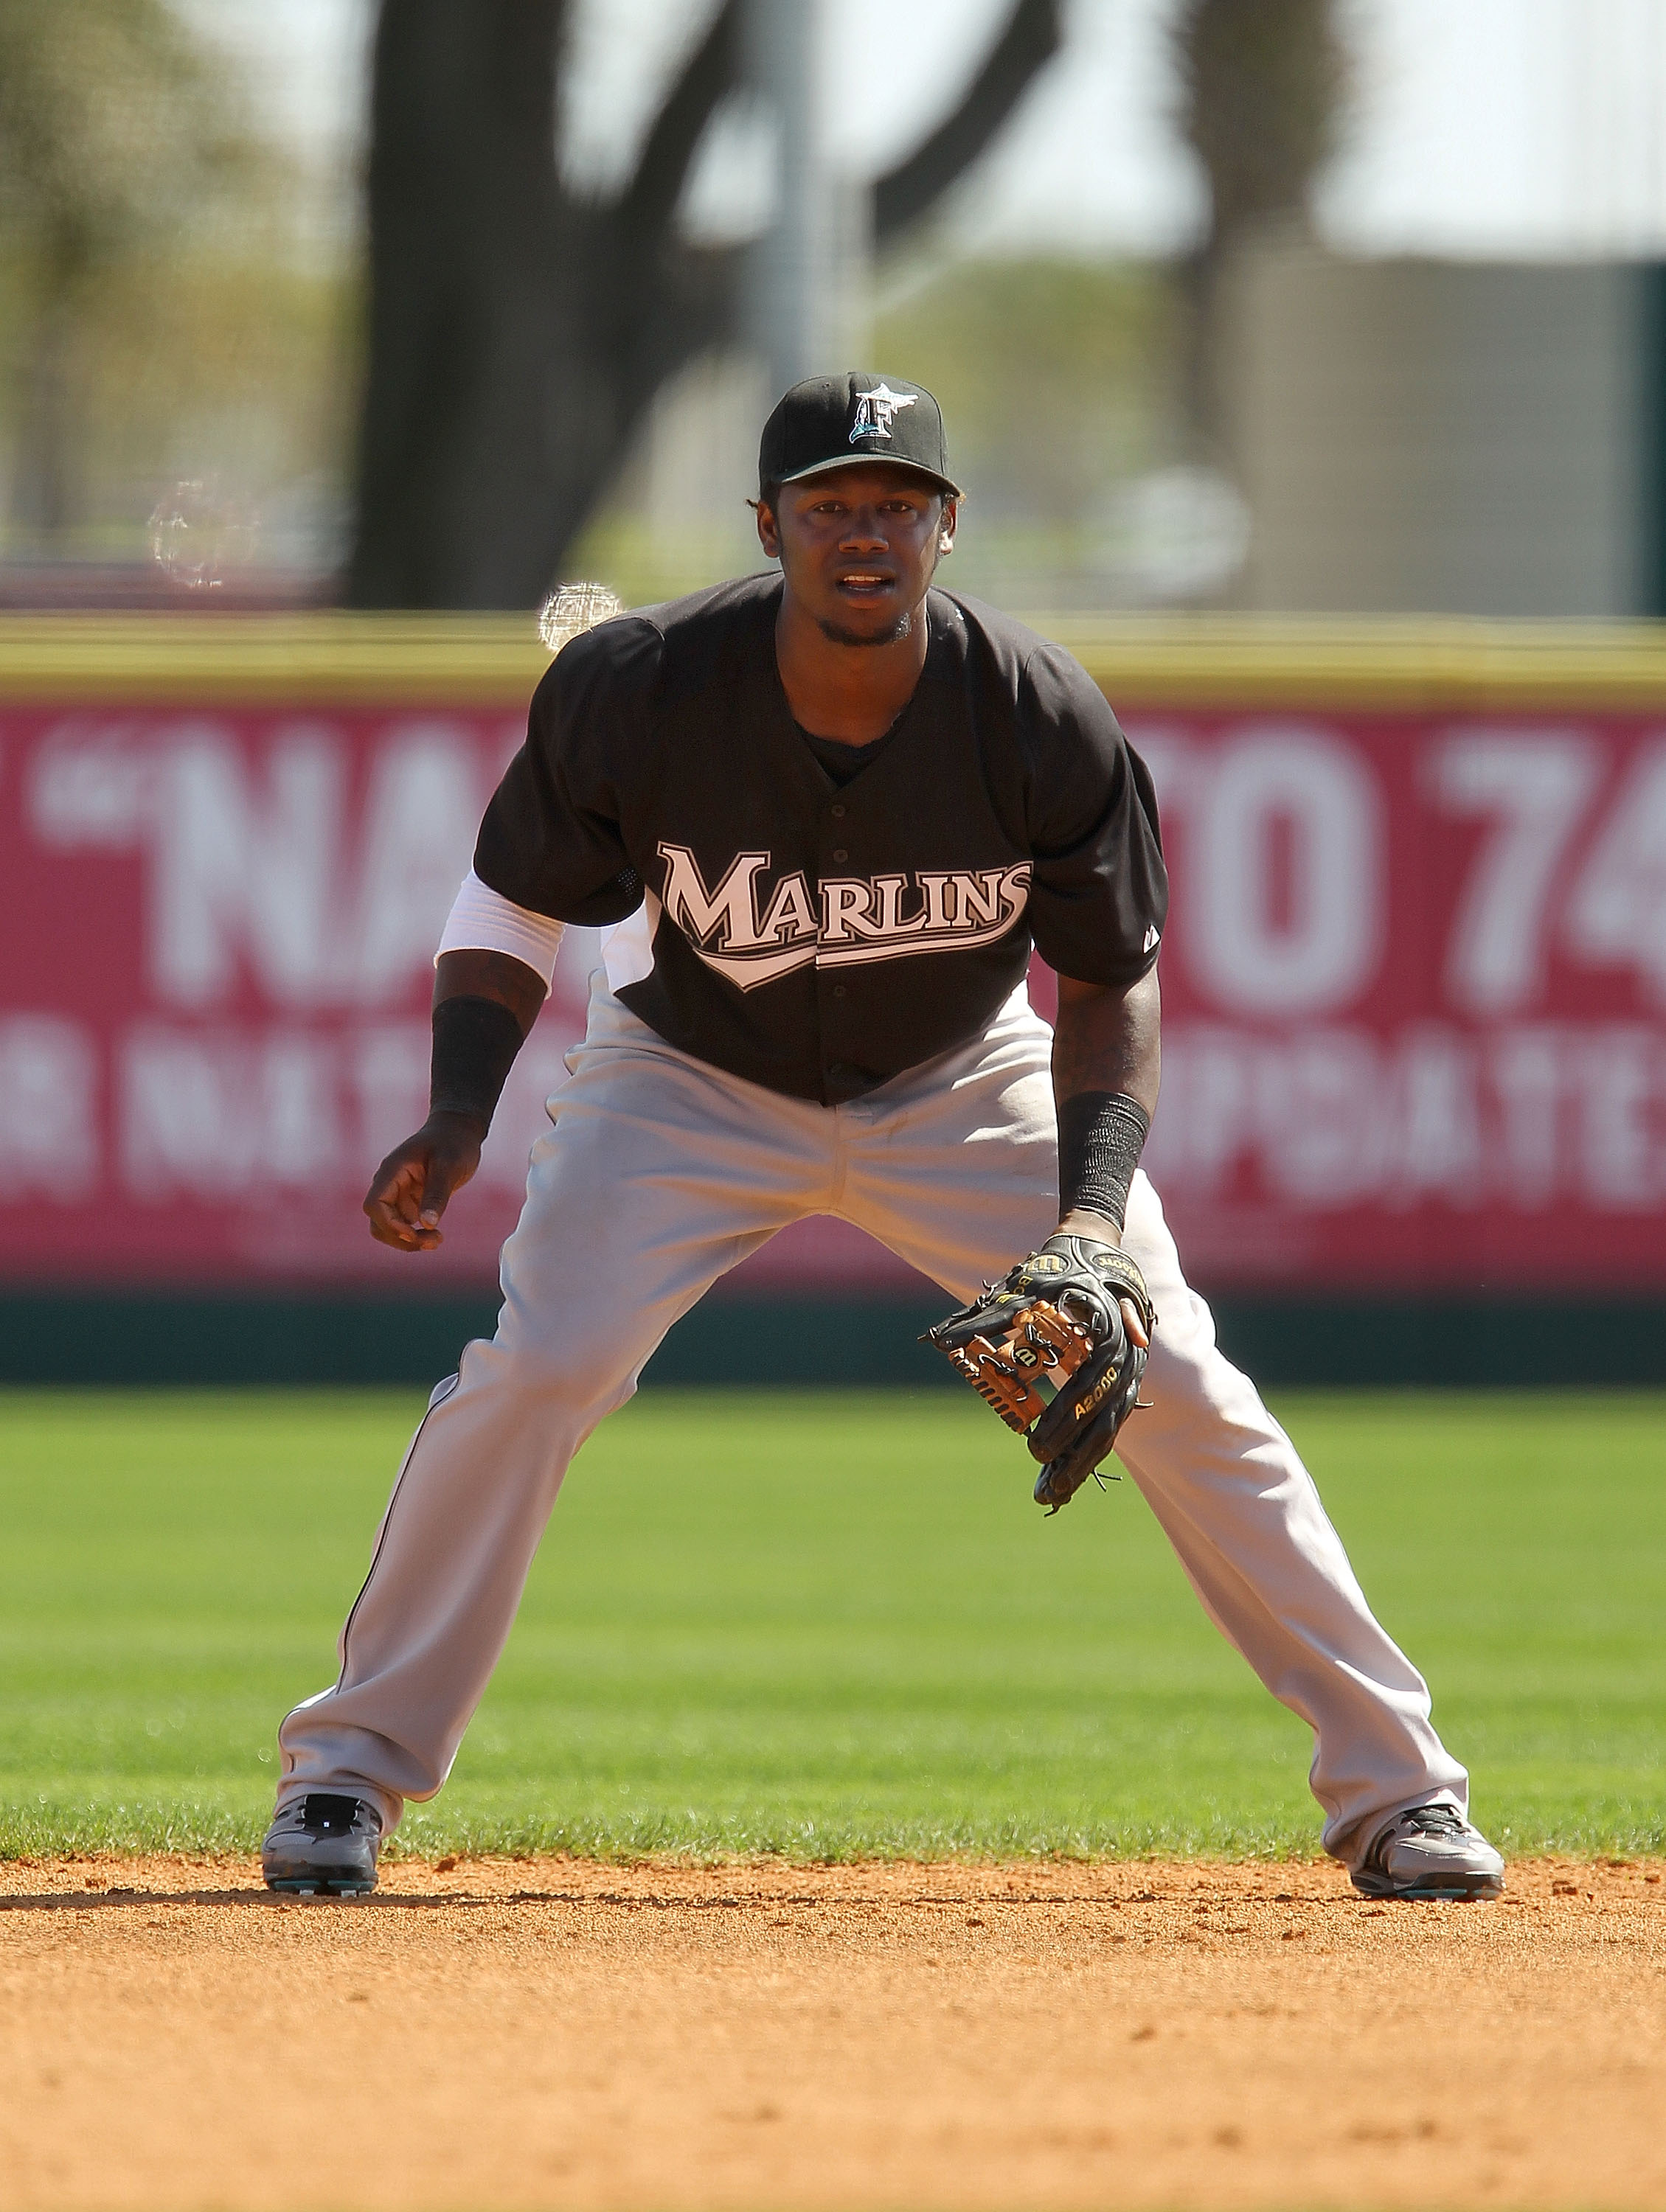 VIERA, FL - MARCH 02:  Hanley Ramirez #2 of the Florida Marlins looks on  during a Spring Training game against the Washington Nationals at Space Coast Stadium on March 2, 2011 in Viera, Florida.  (Photo by Mike Ehrmann/Getty Images)